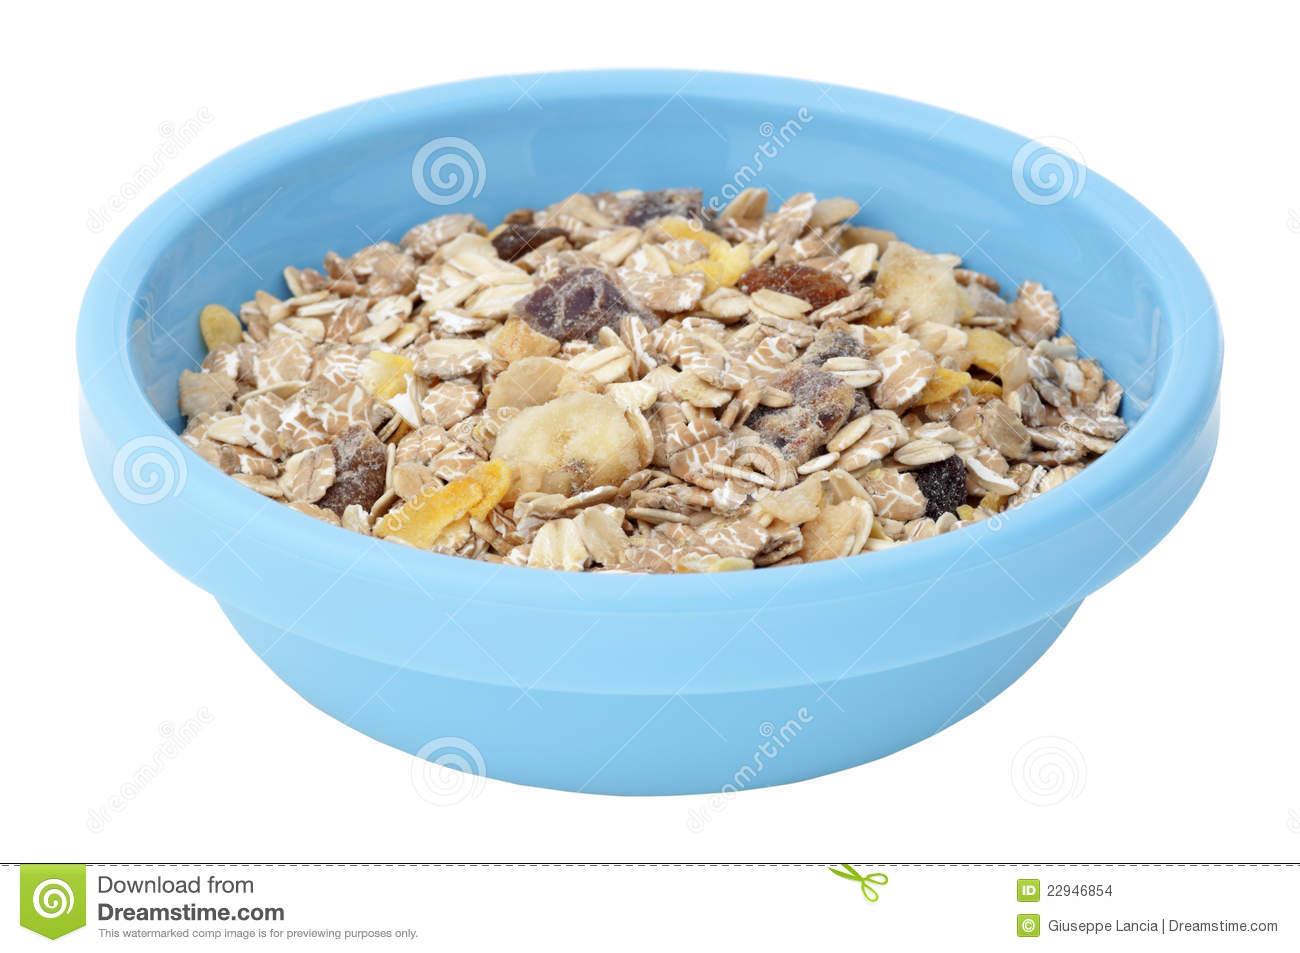 Muesli Cereal In Plastic Bowl Isolated On White Stock Images - Image ...